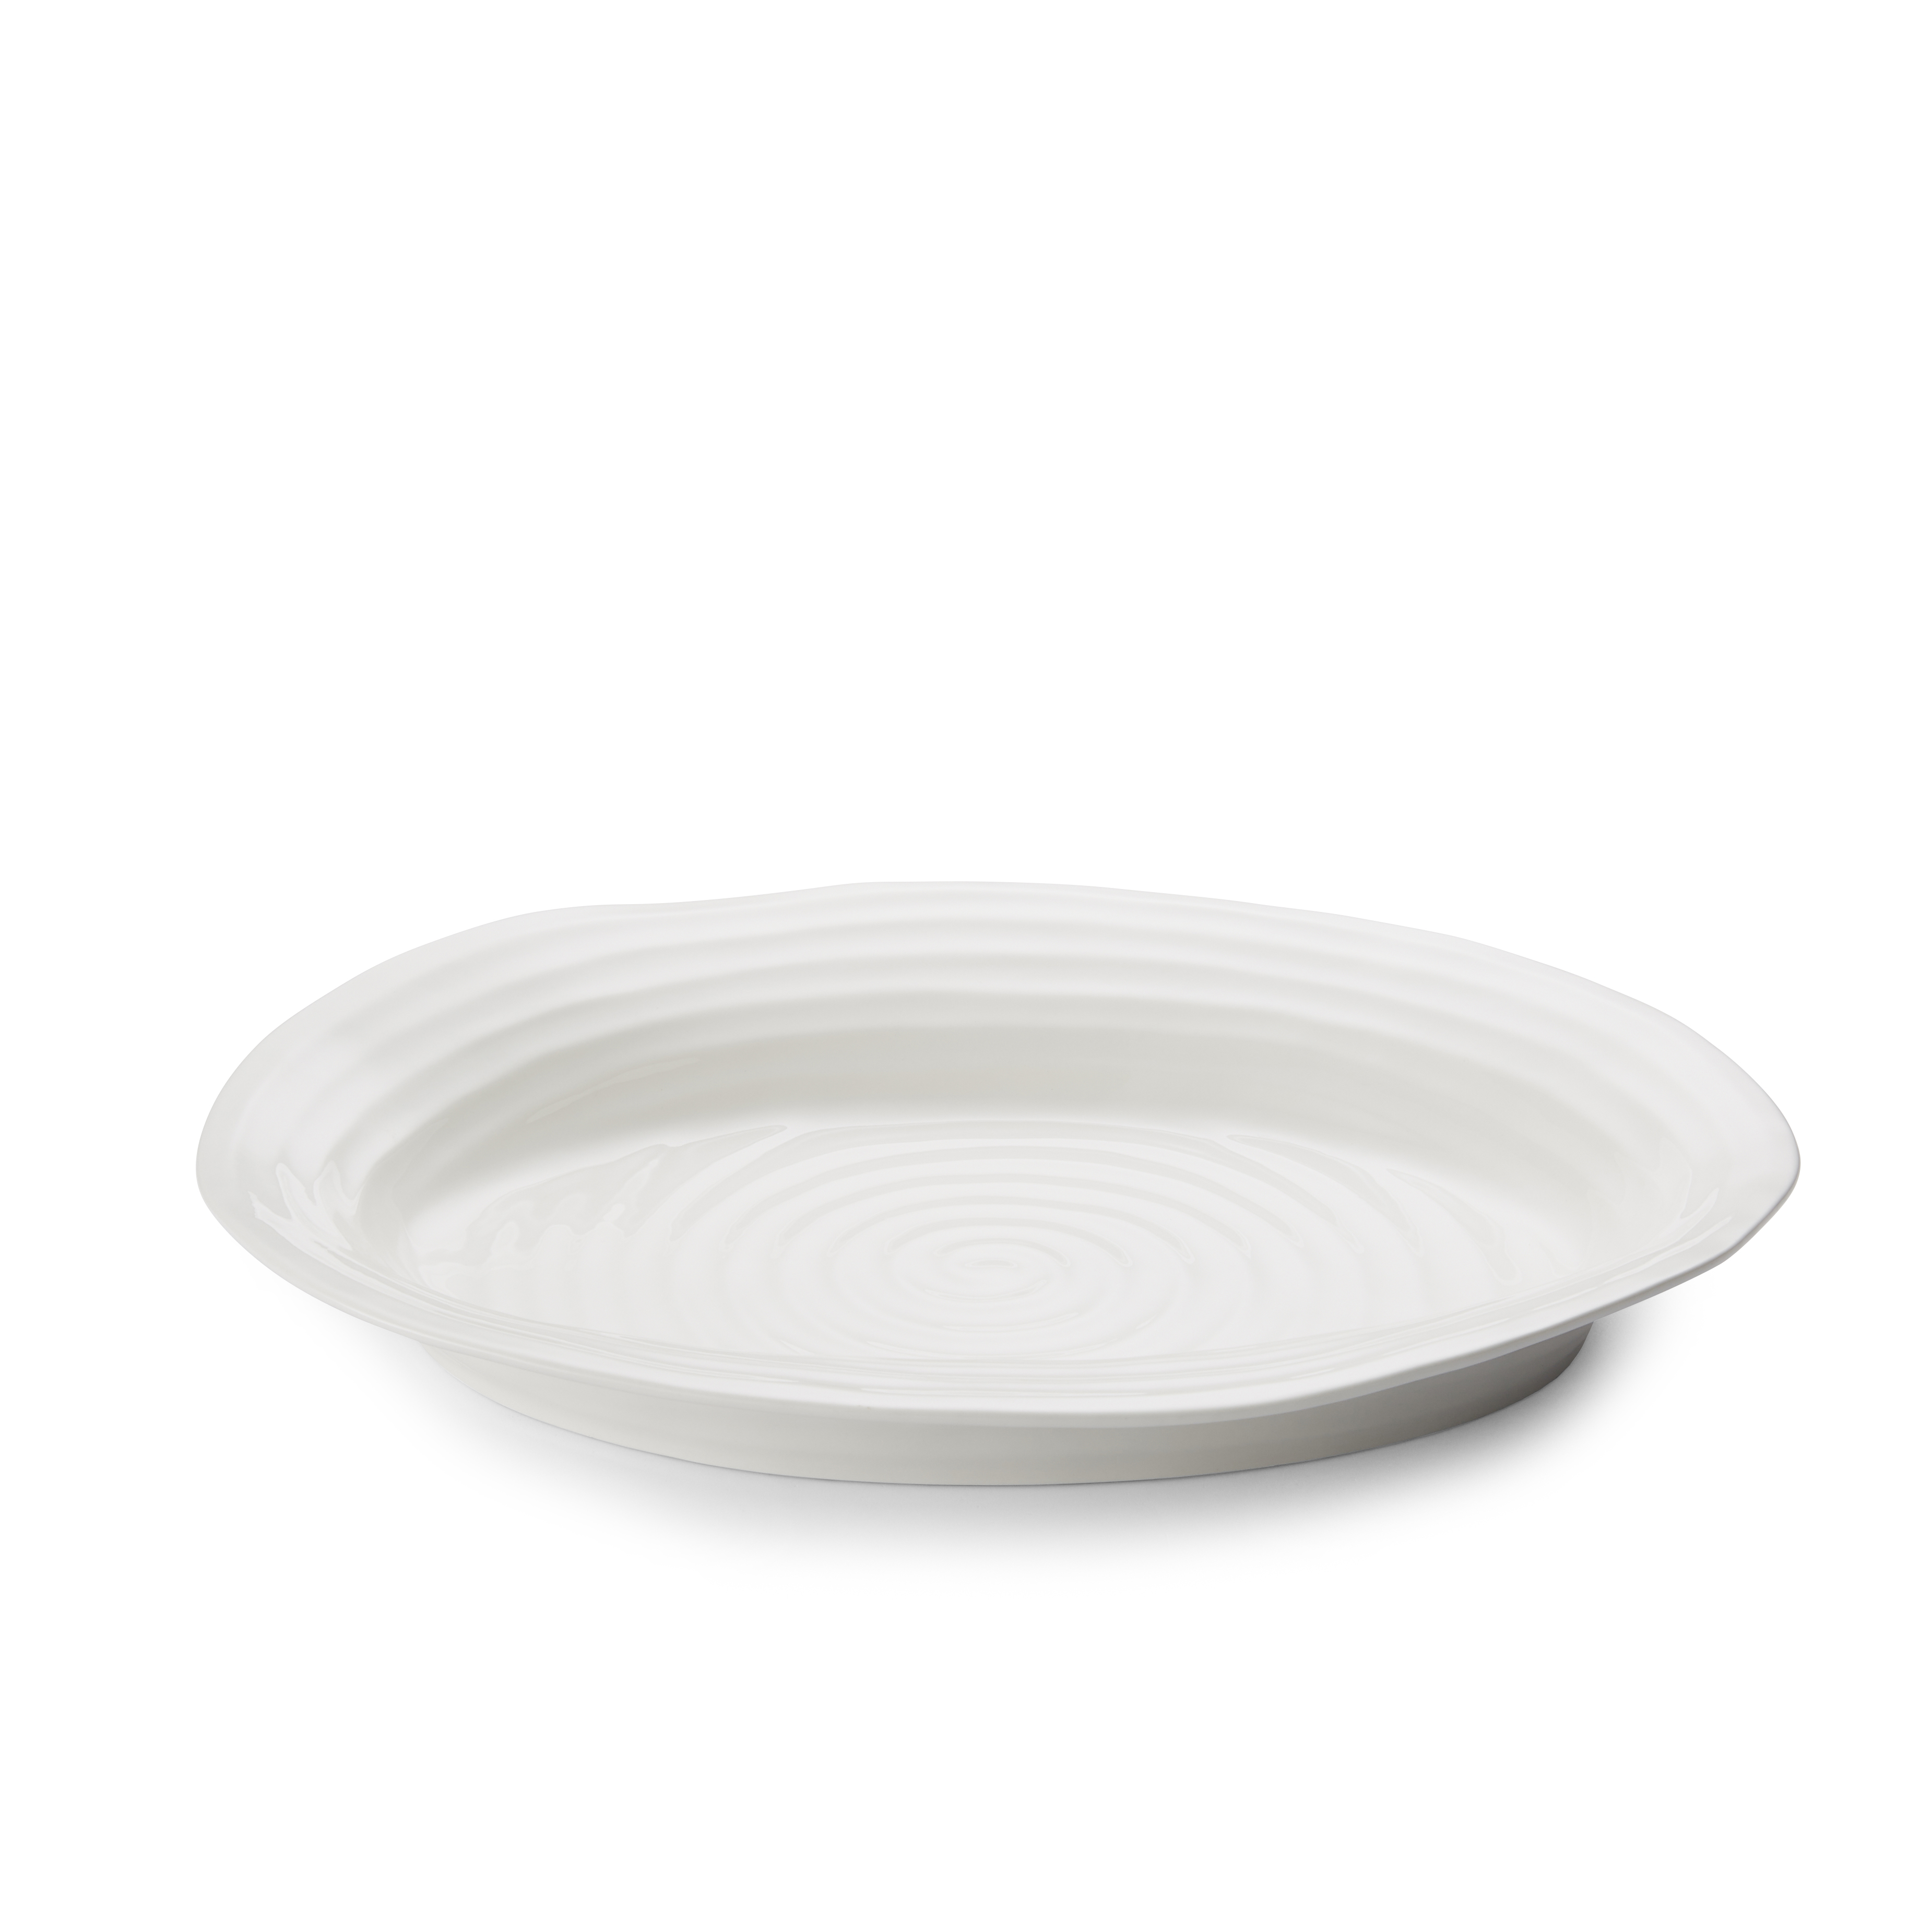 Portmeirion Sophie Conran White Medium Oval Platter image number 1